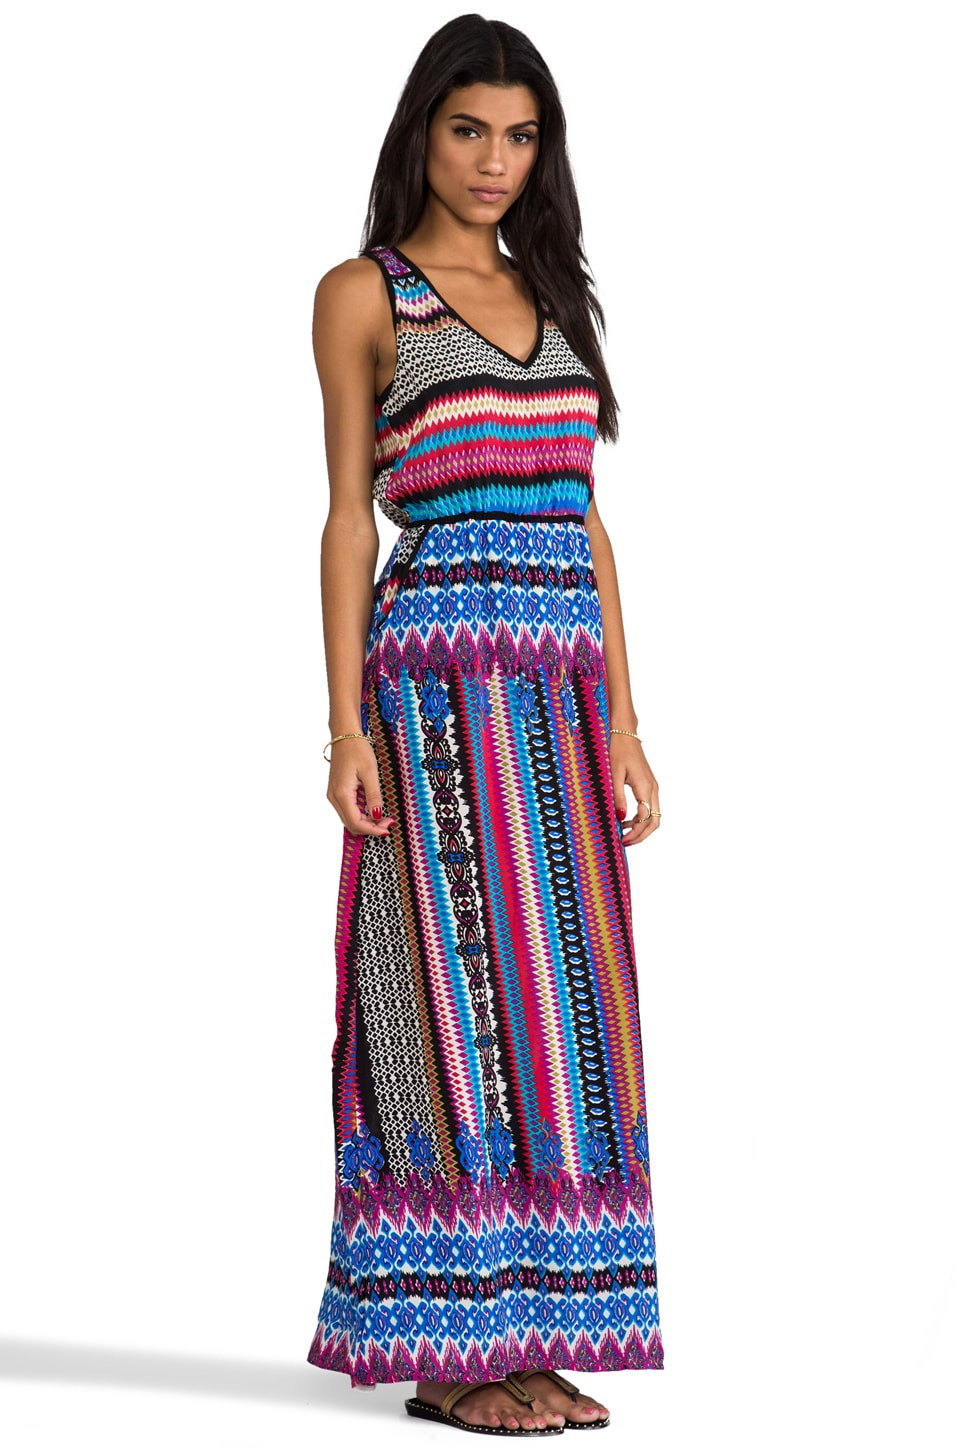 Tolani Norah Maxi Dress in Fiesta